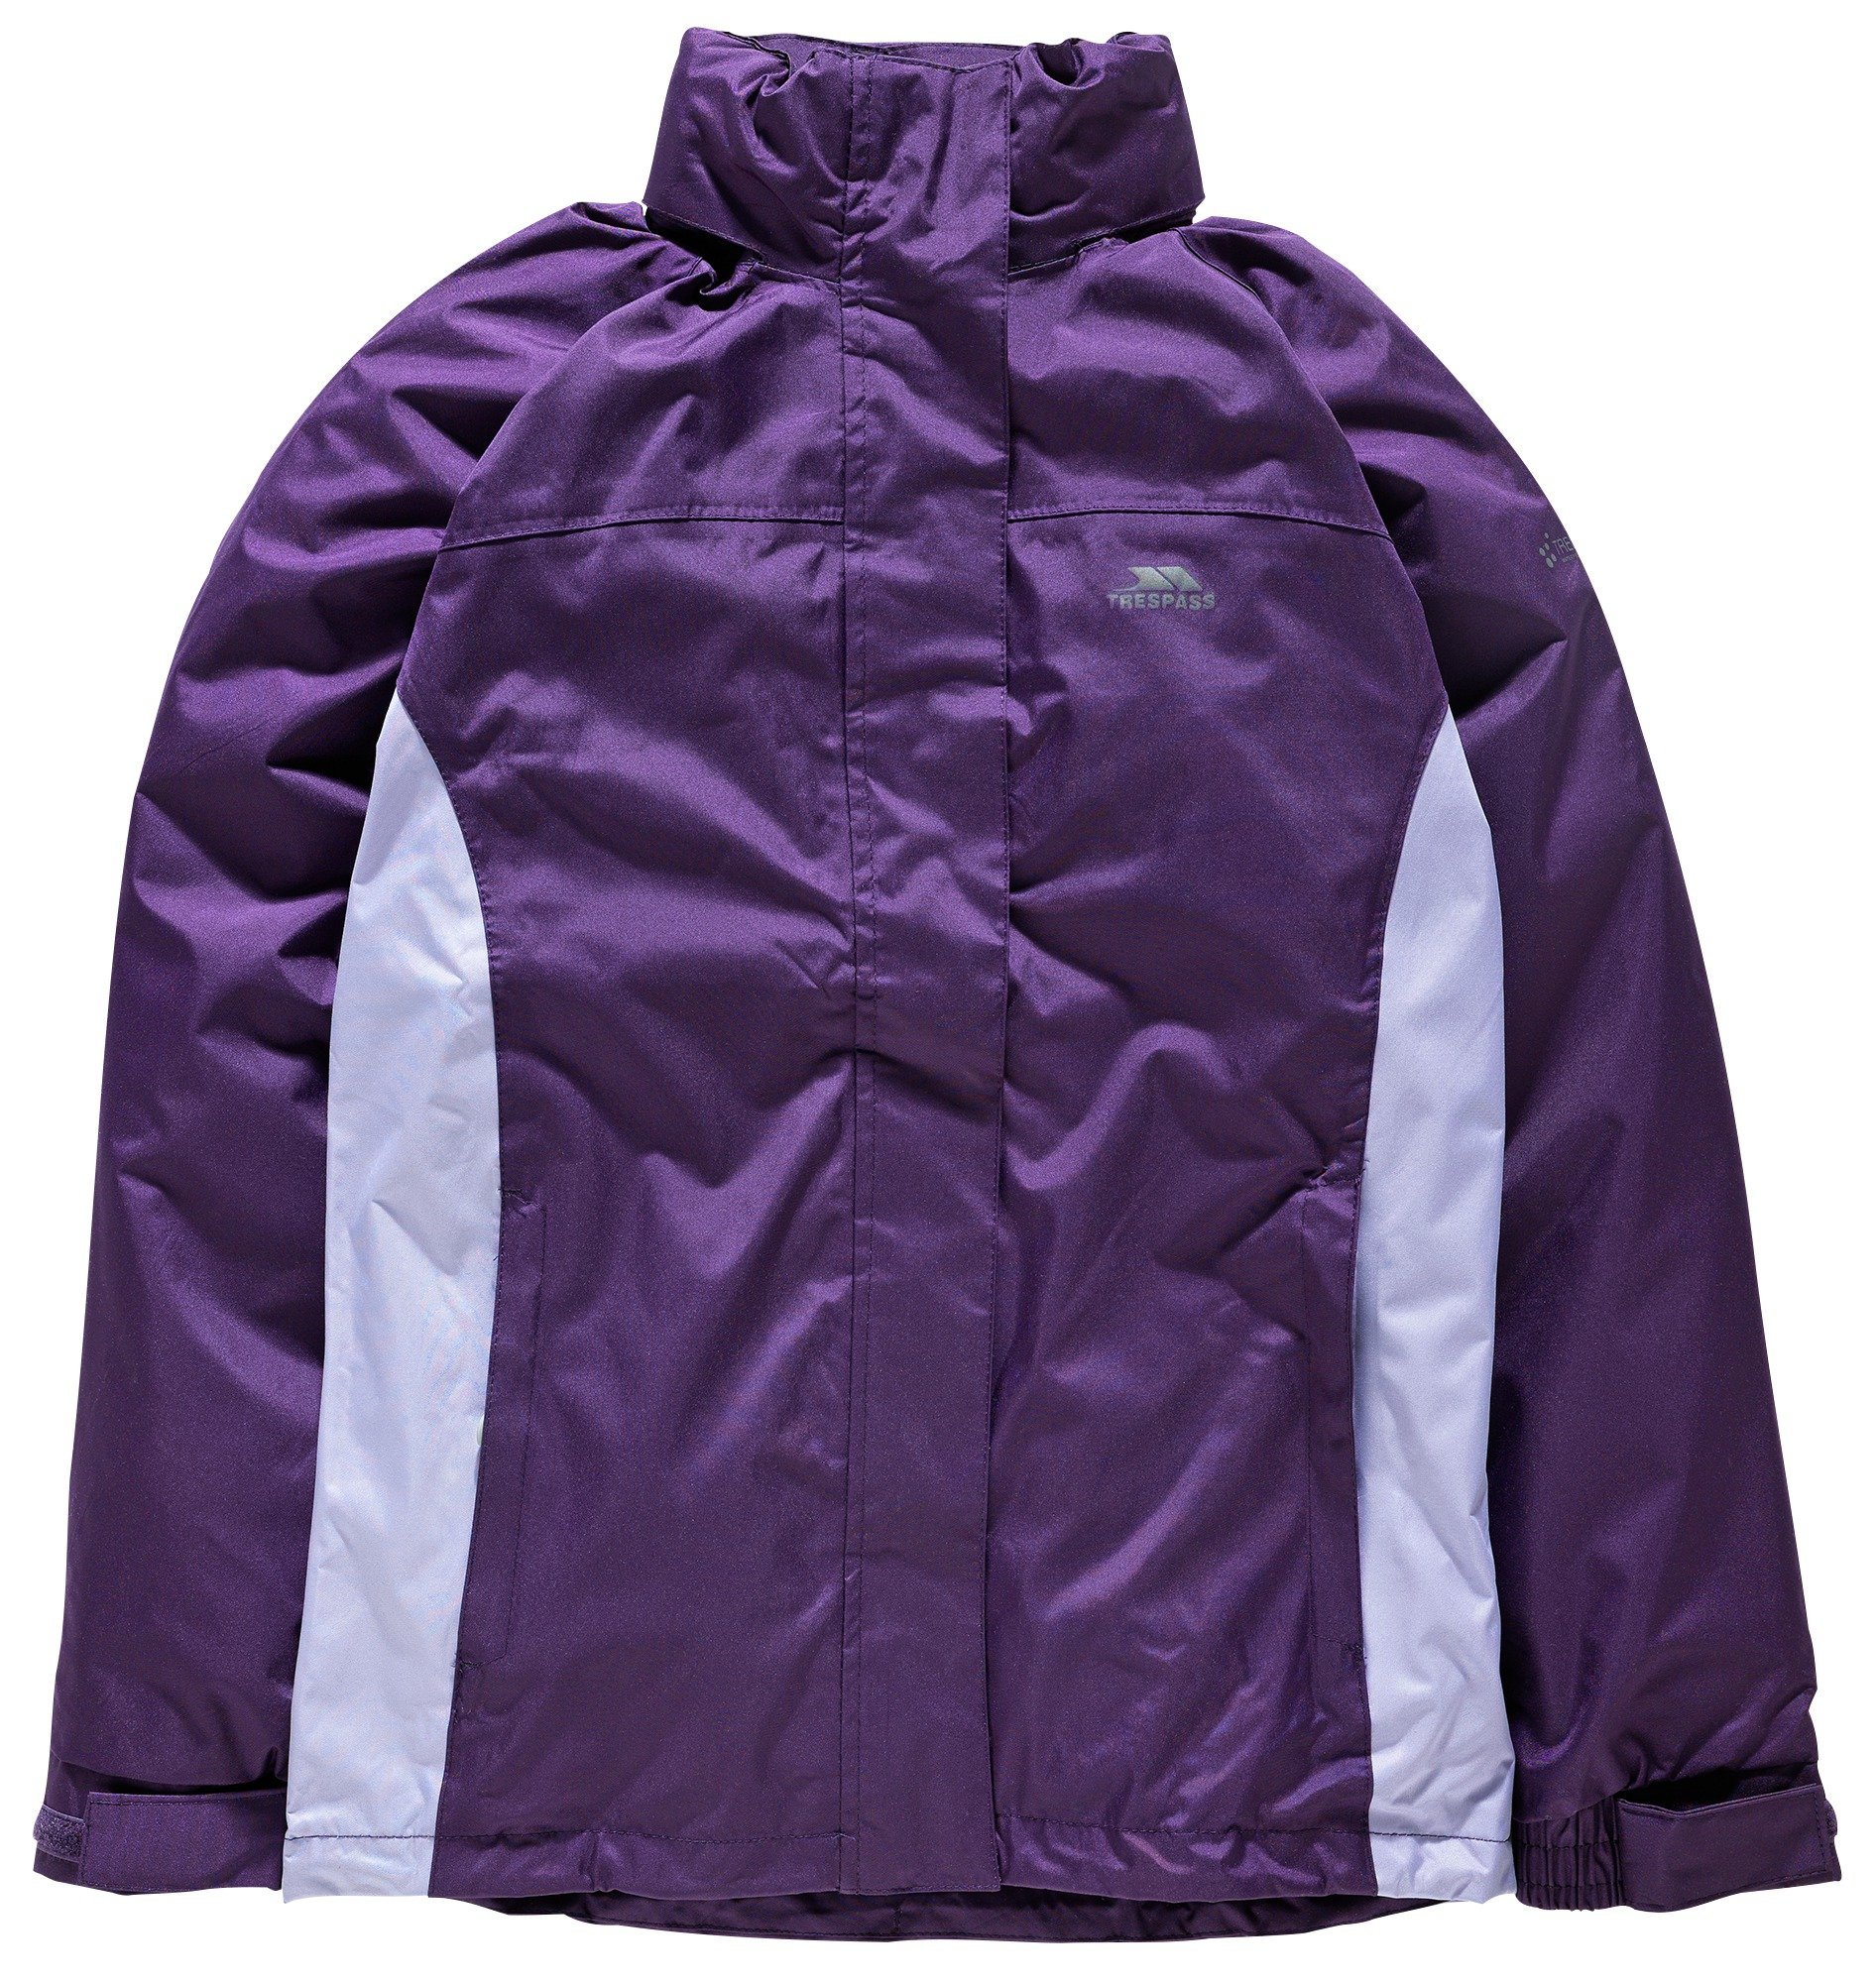 Image of Trespass Ladies' Purple Tarron II Jacket - Extra Large